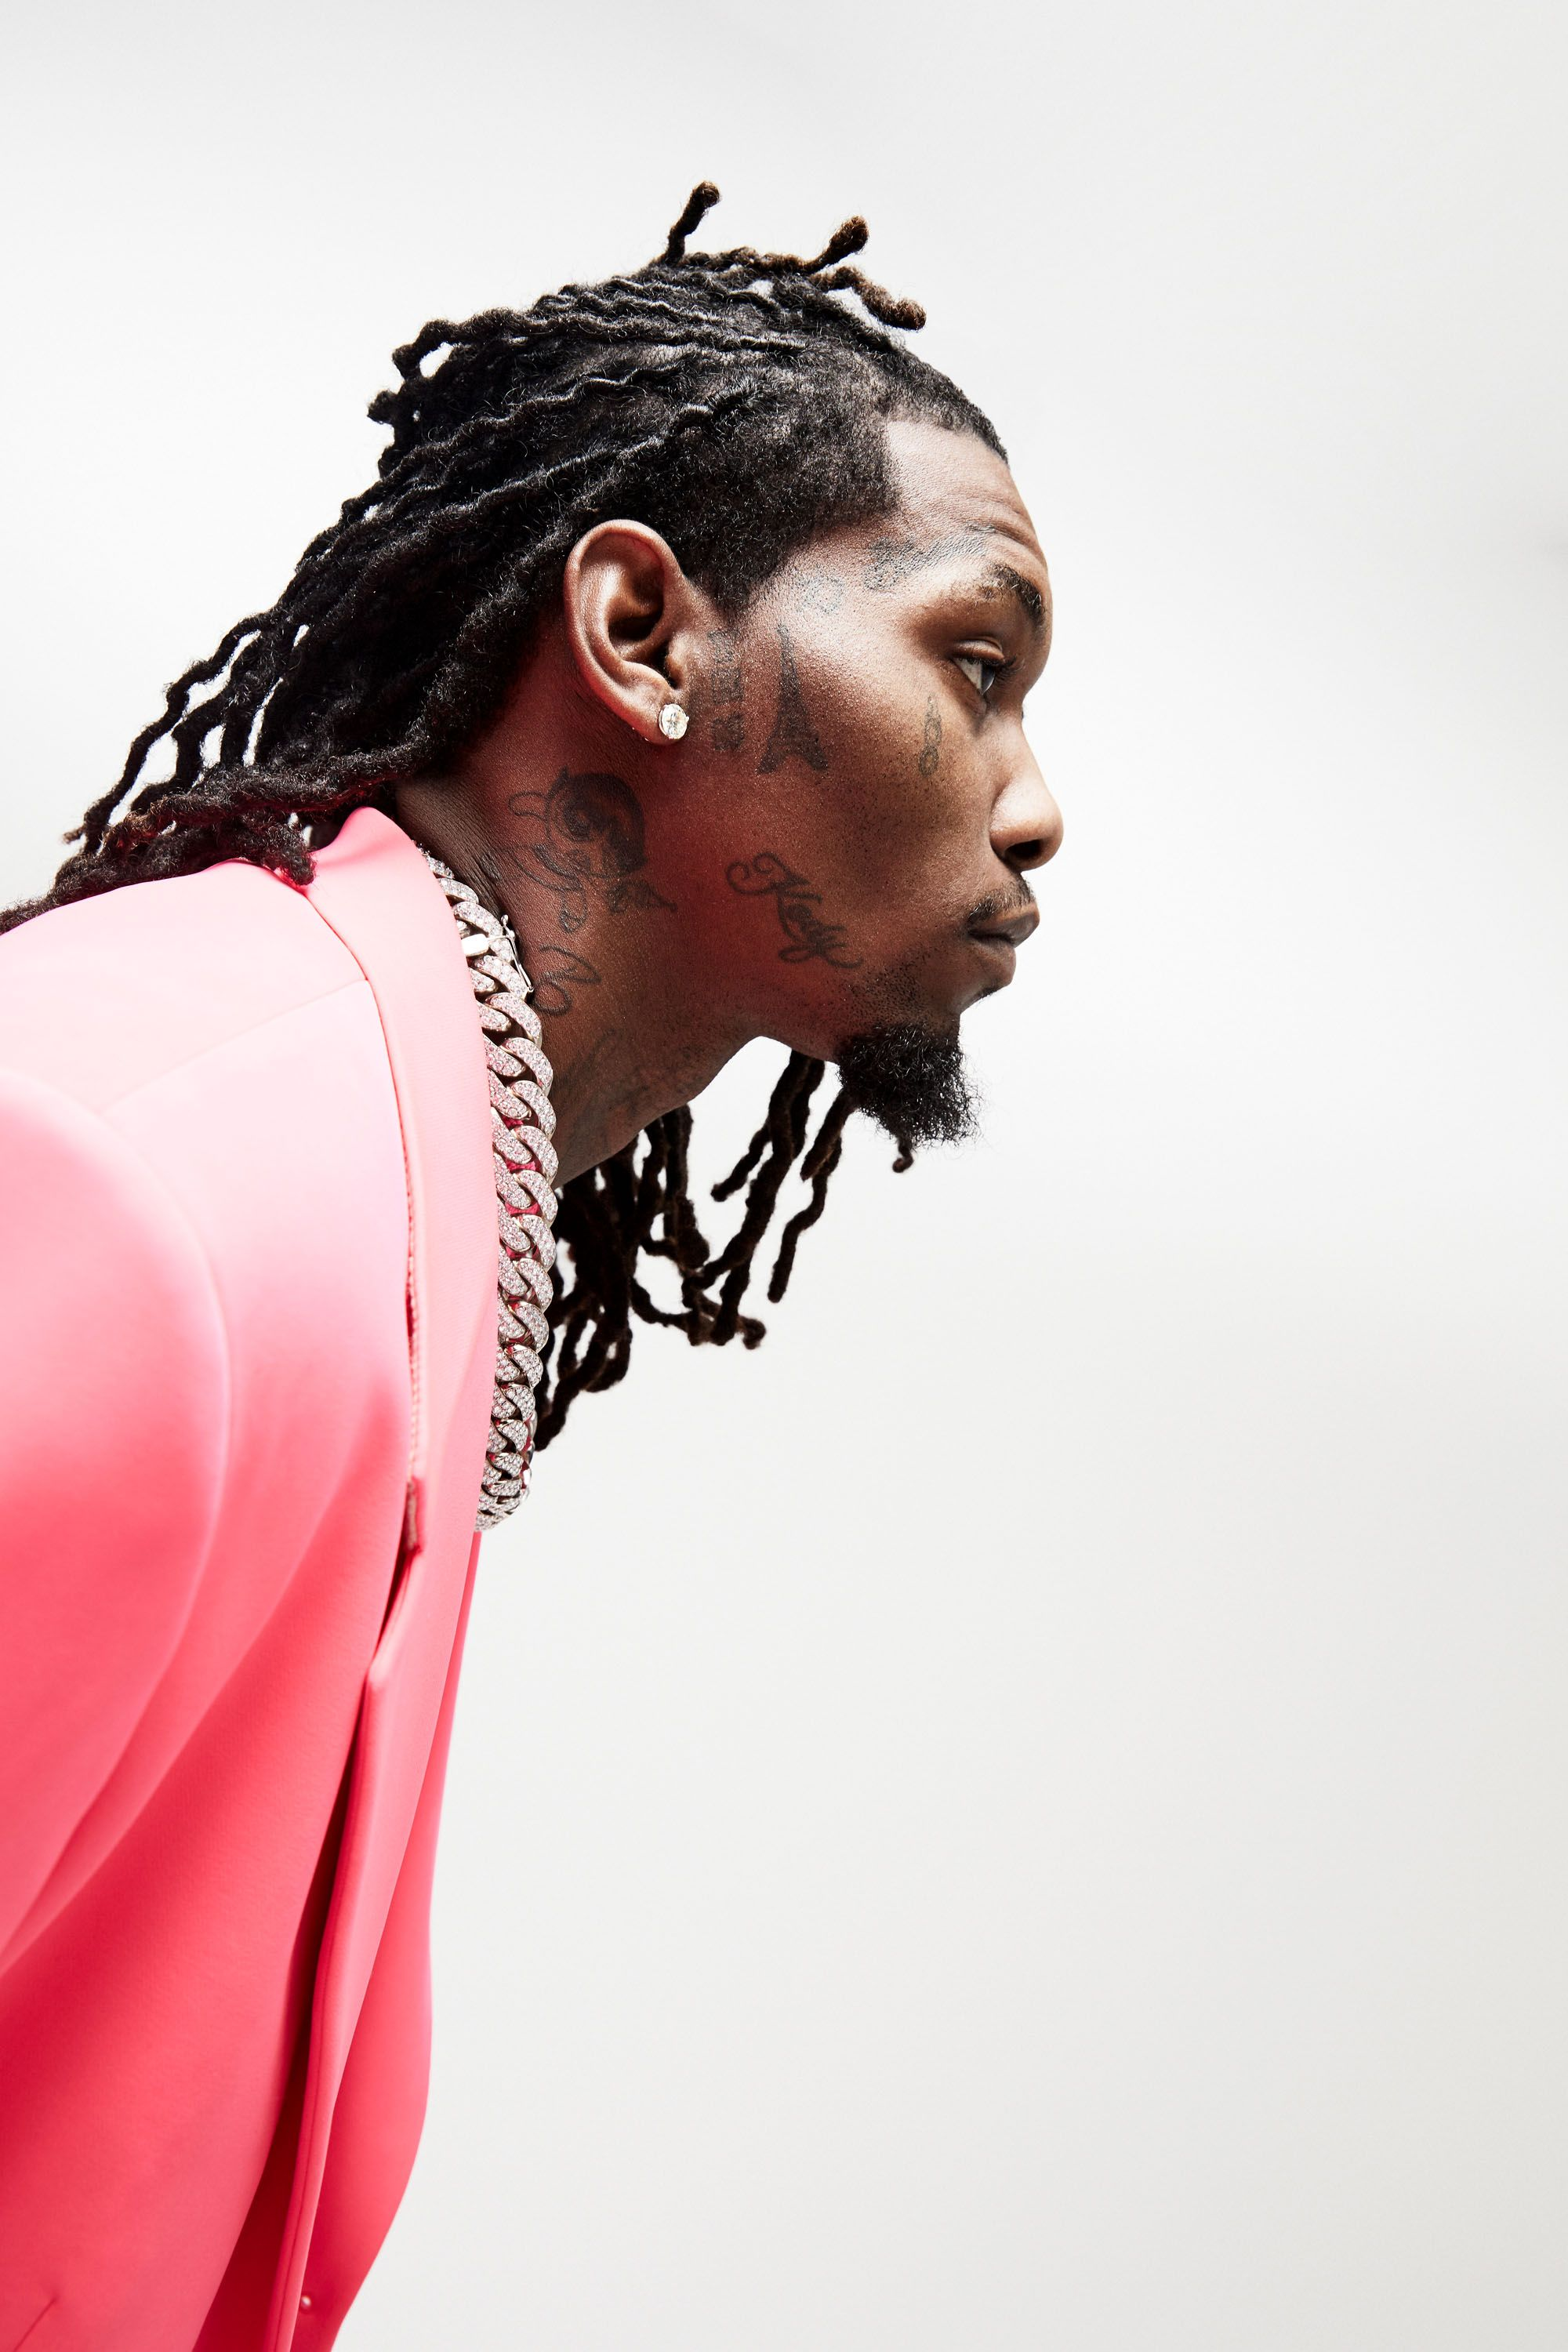 Offset Talks Cardi B Relationship, New 2019 Solo Album, and